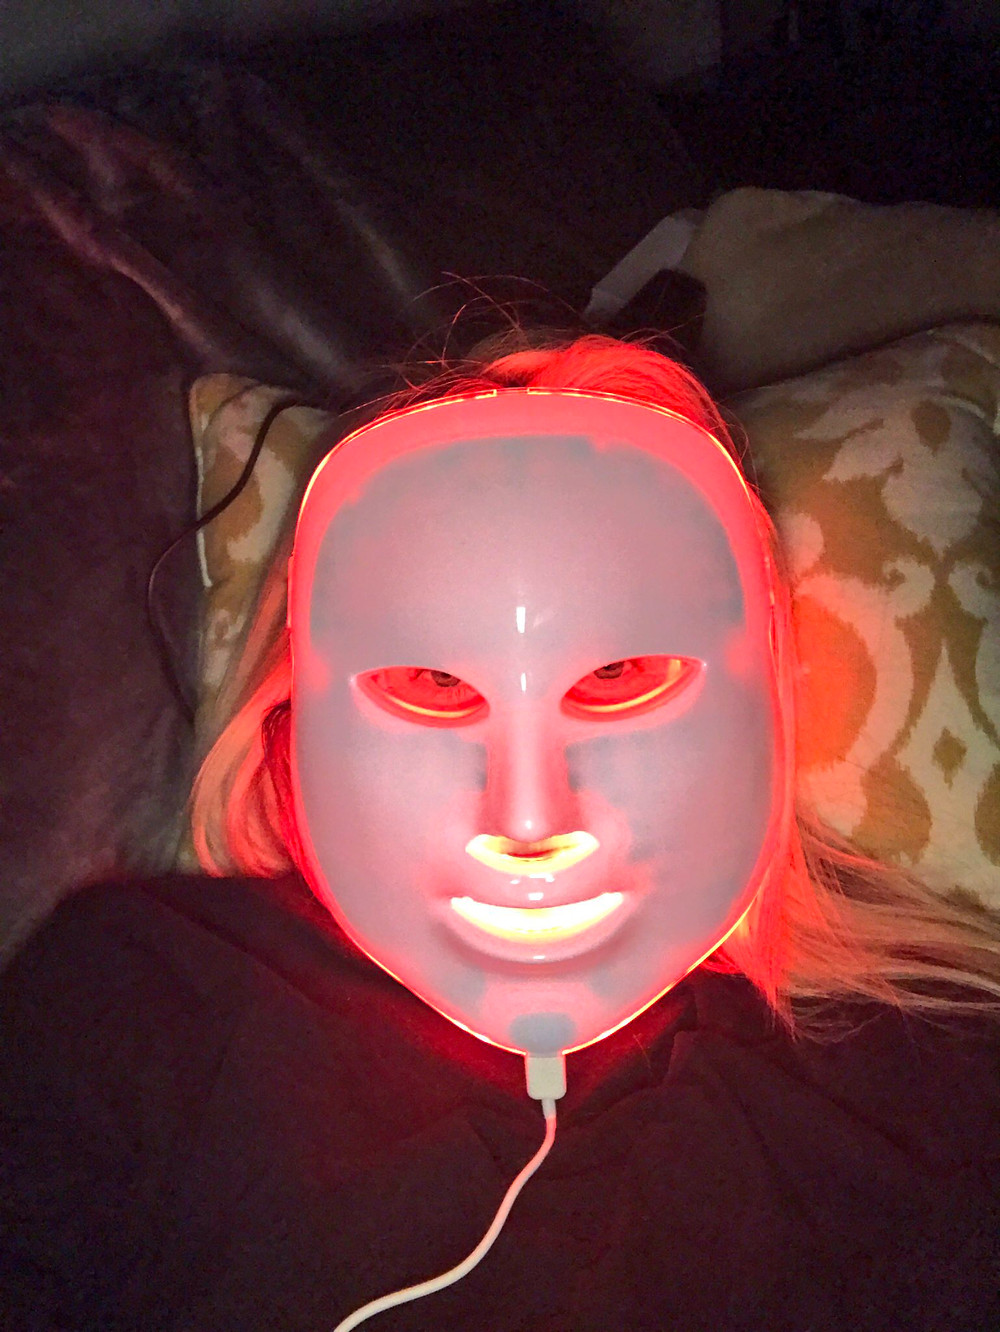 nefits-of-red-light-therapy/